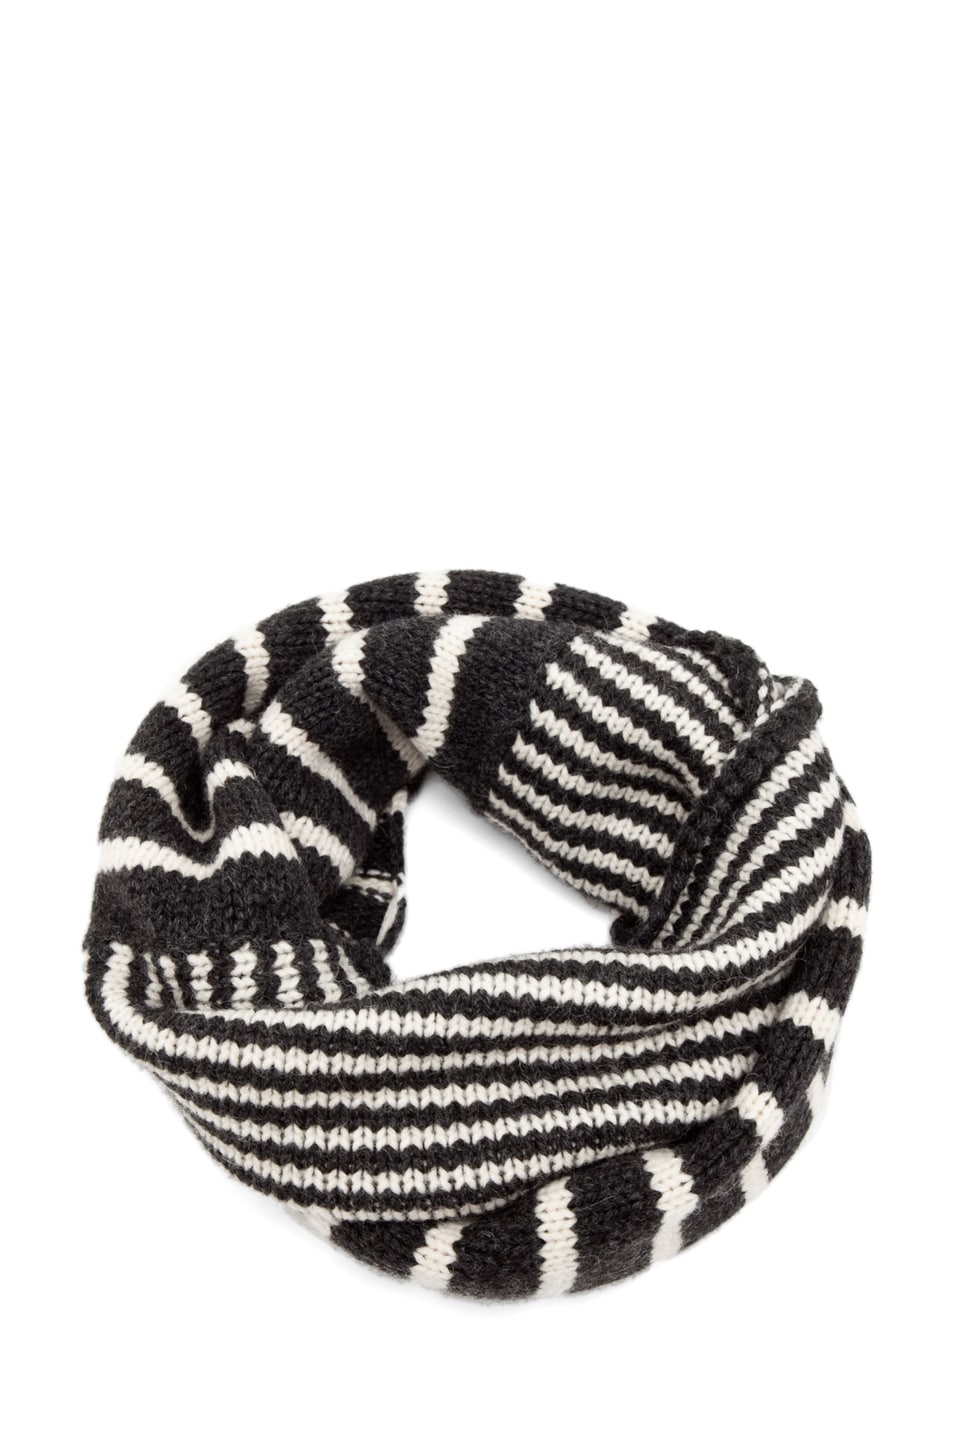 Image 1 of Neil Barrett Mixed Striped Snood in Graphite Melange/Snow